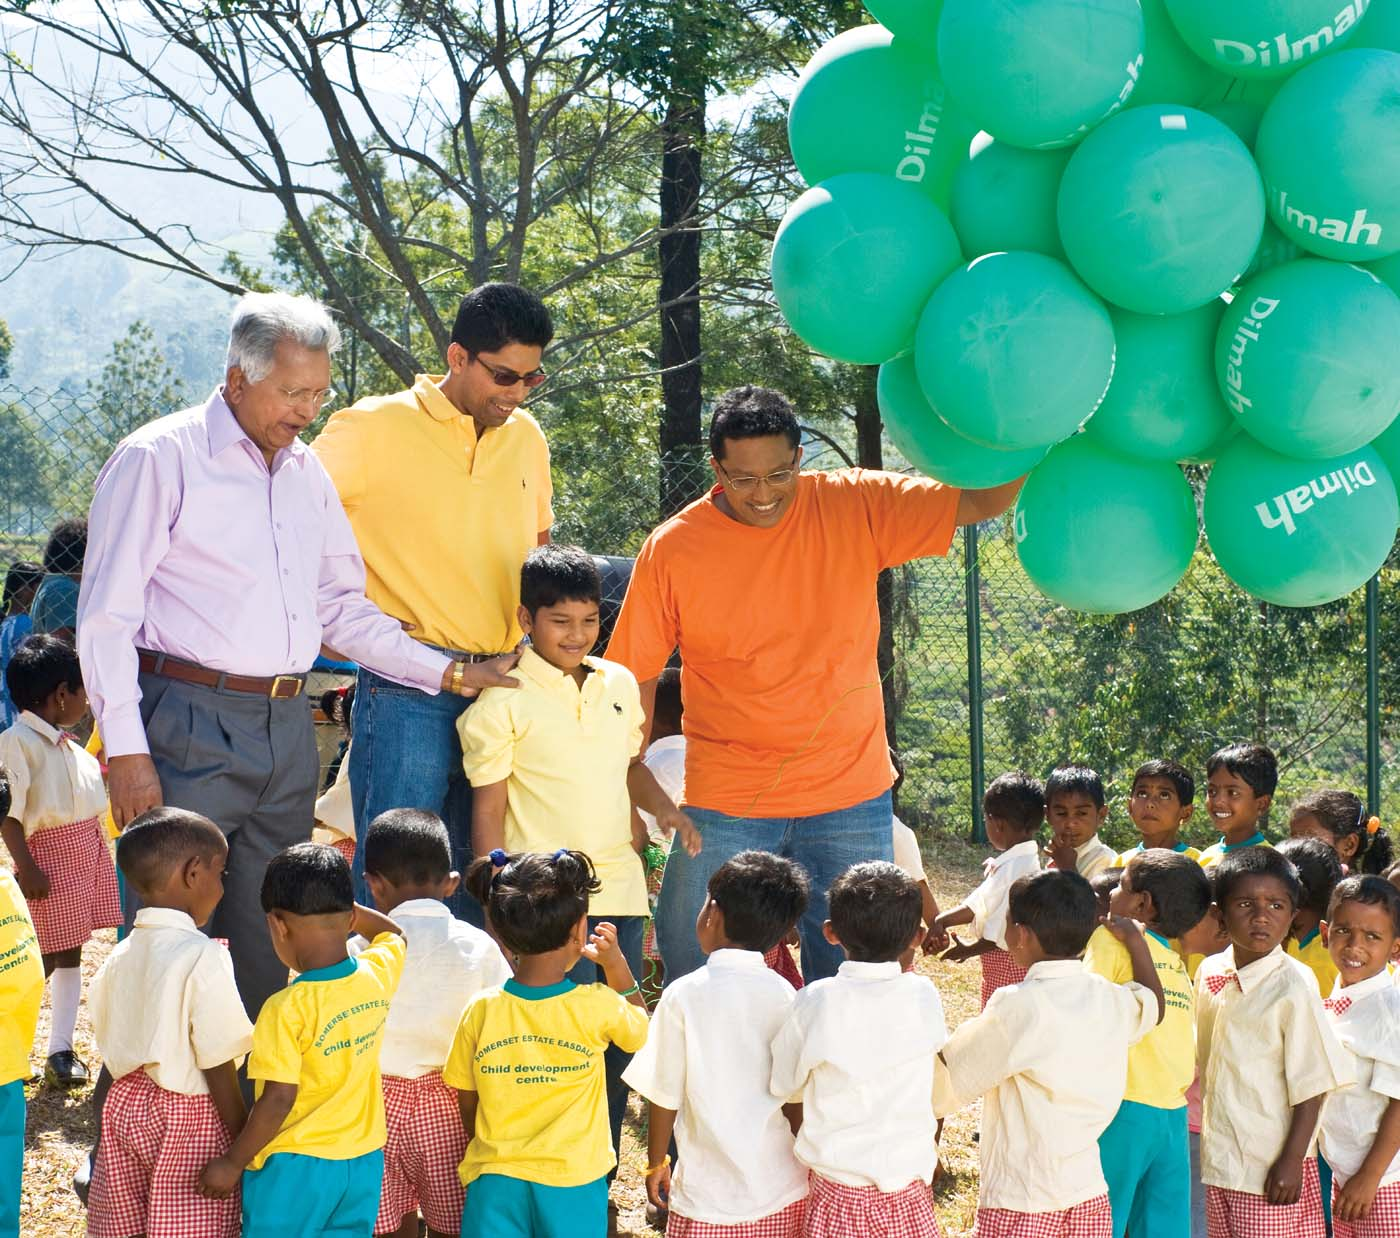 Nurturing children on Dilmah plantations is a family effort for Merrill and his sons. With preschool students of the Somerset Estate Child Development Centre where children under the age of 5 receive daily care and nutrition.